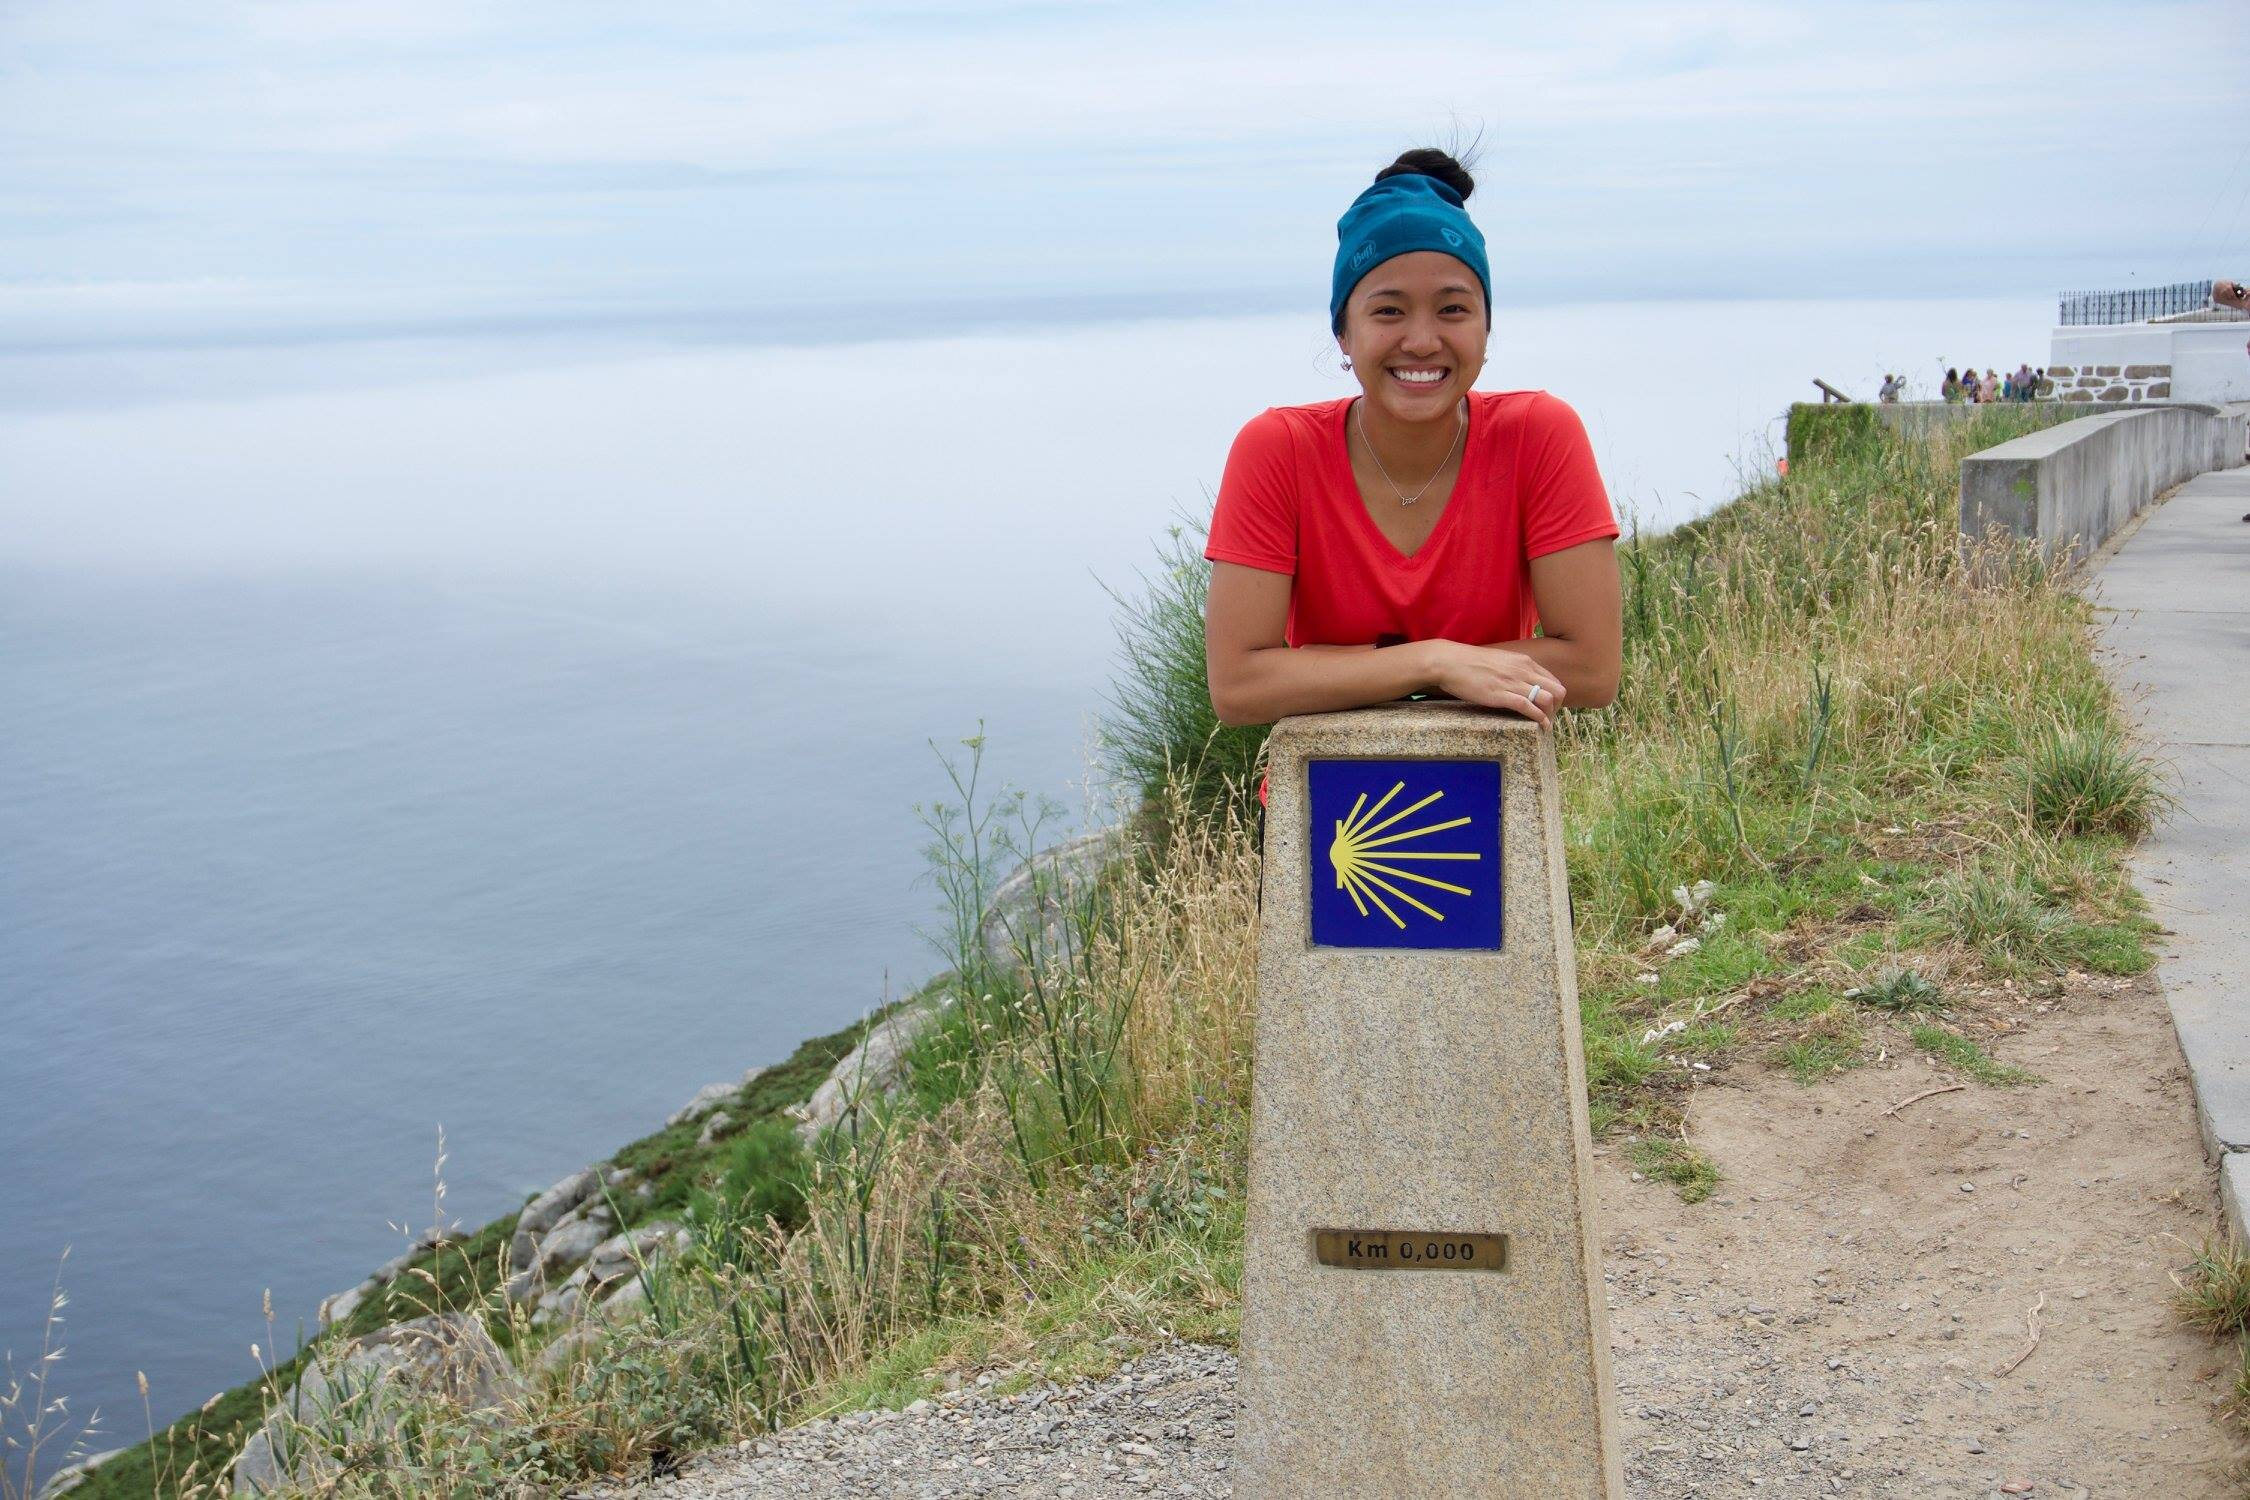 KM 0 at Finisterre